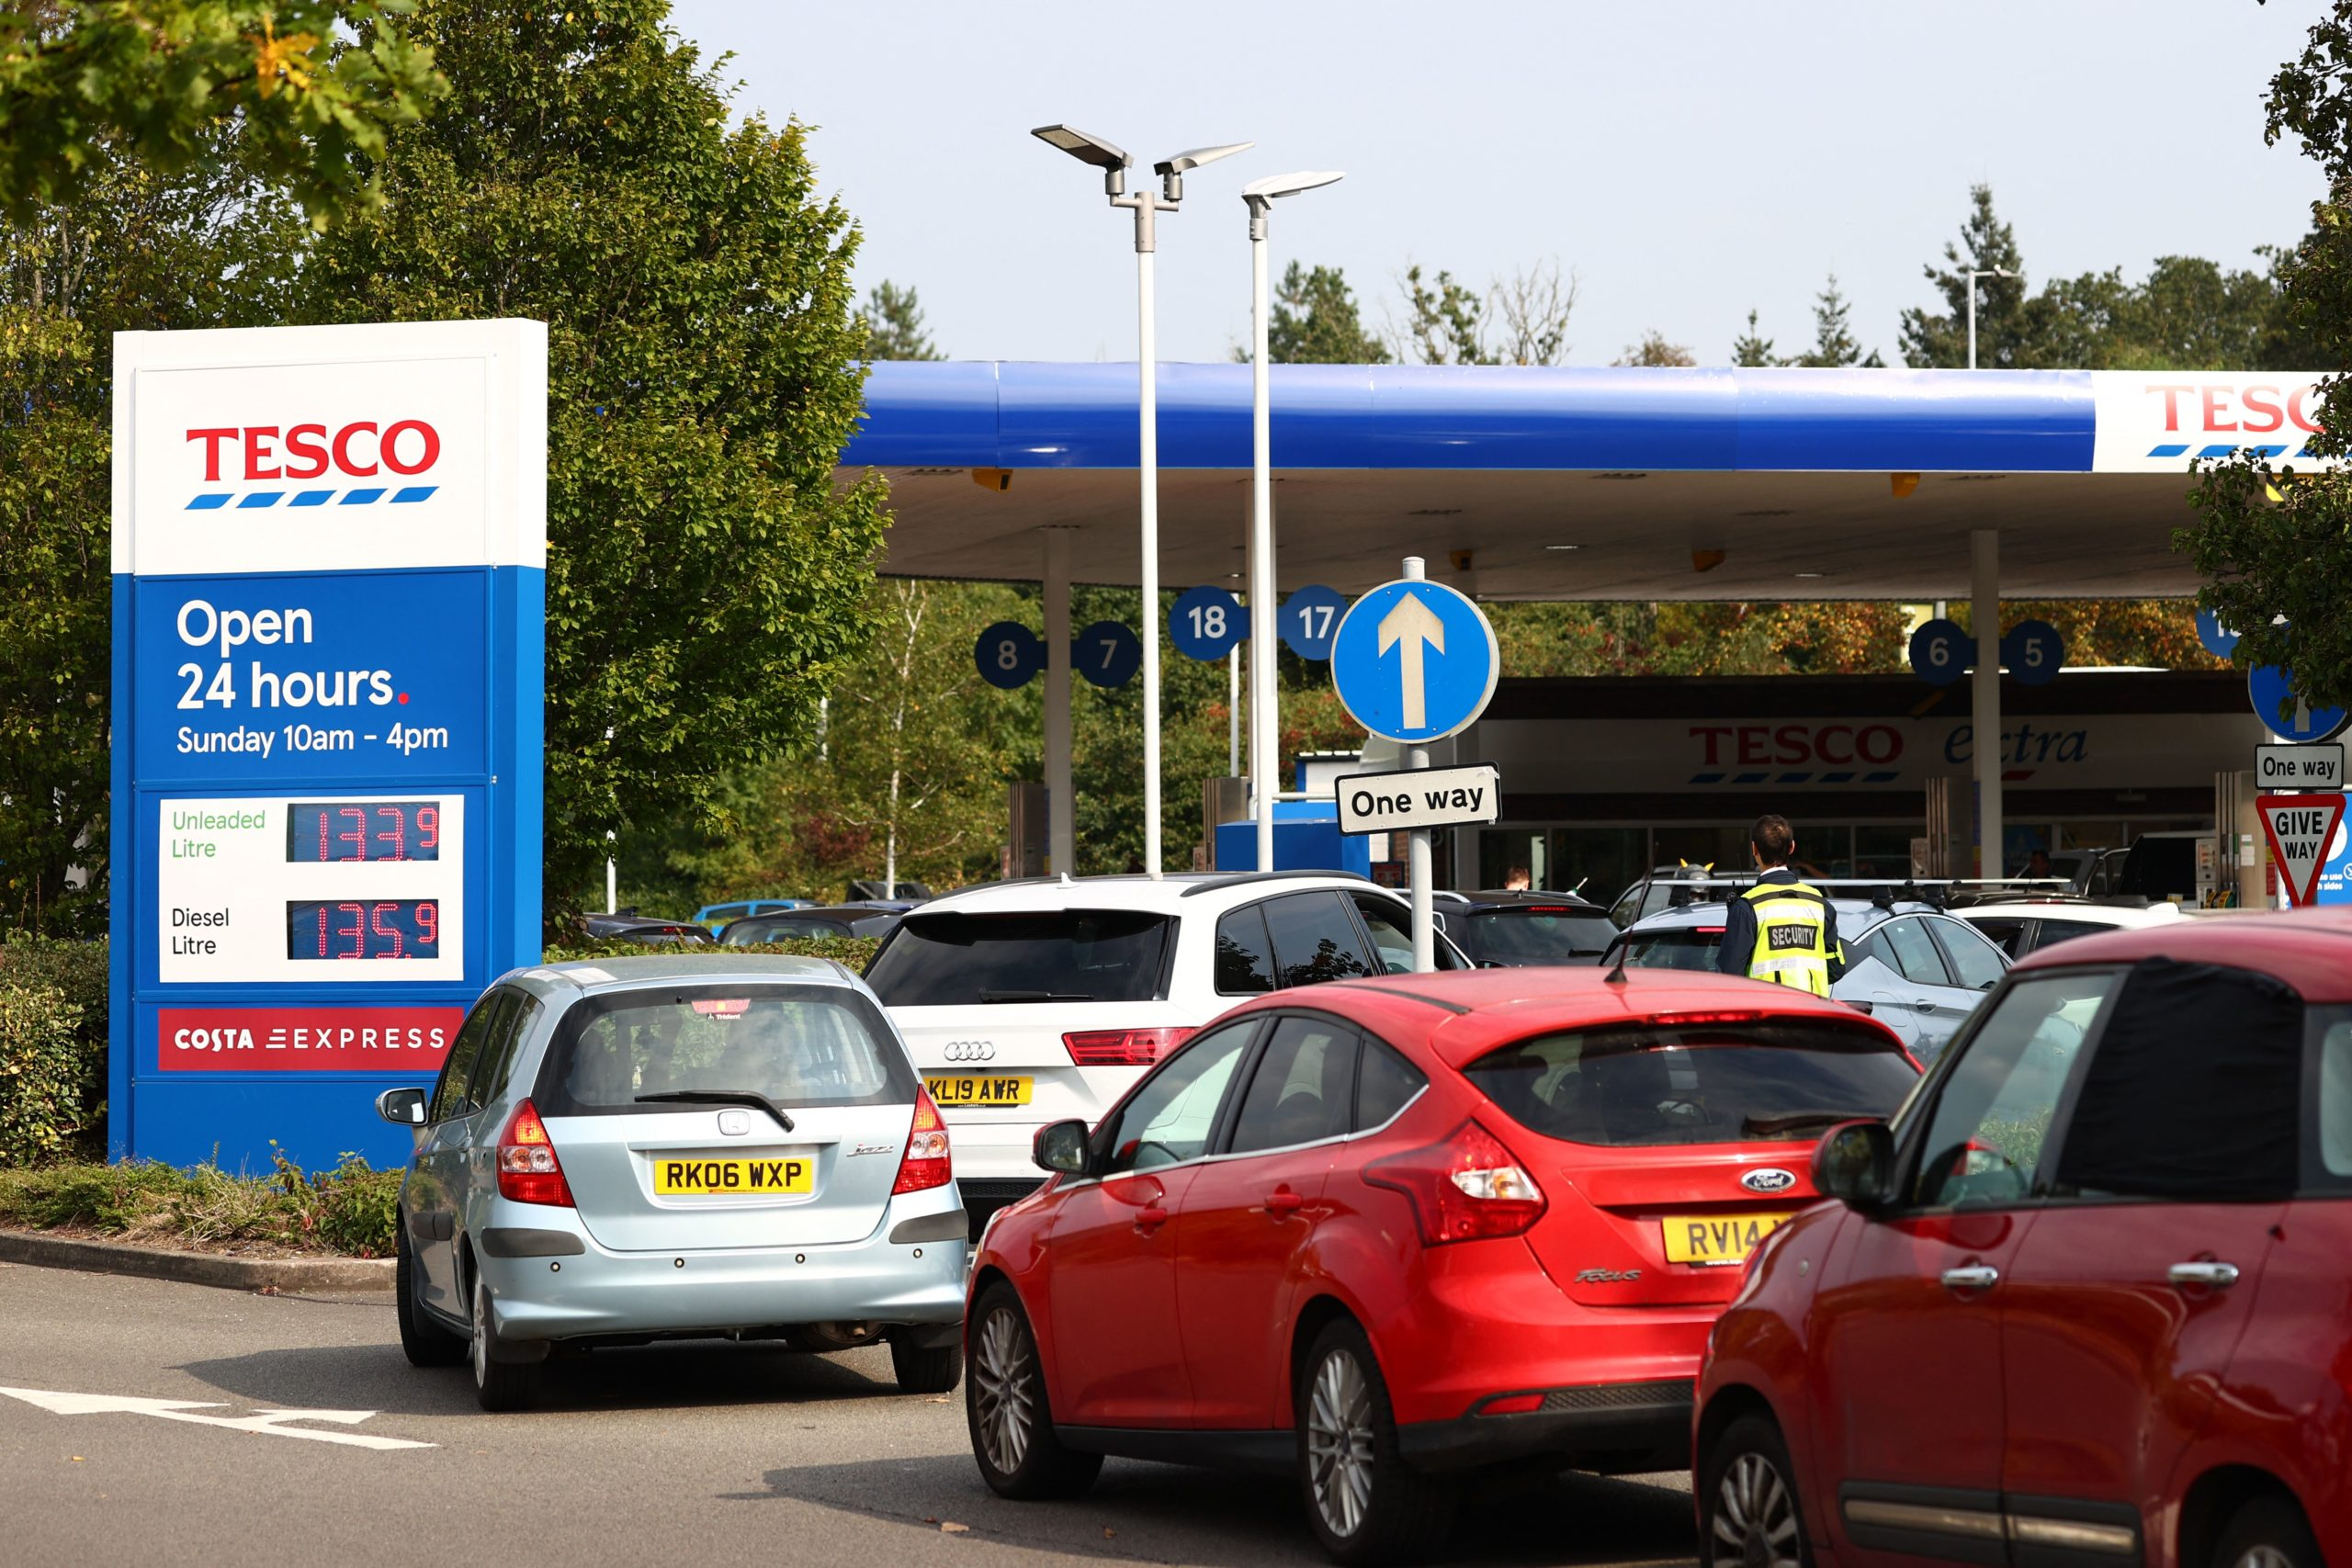 A line of vehicles is seen at a gas station in Camberley, U.K. on Sunday. (Adrian Dennis/AFP via Getty Images)